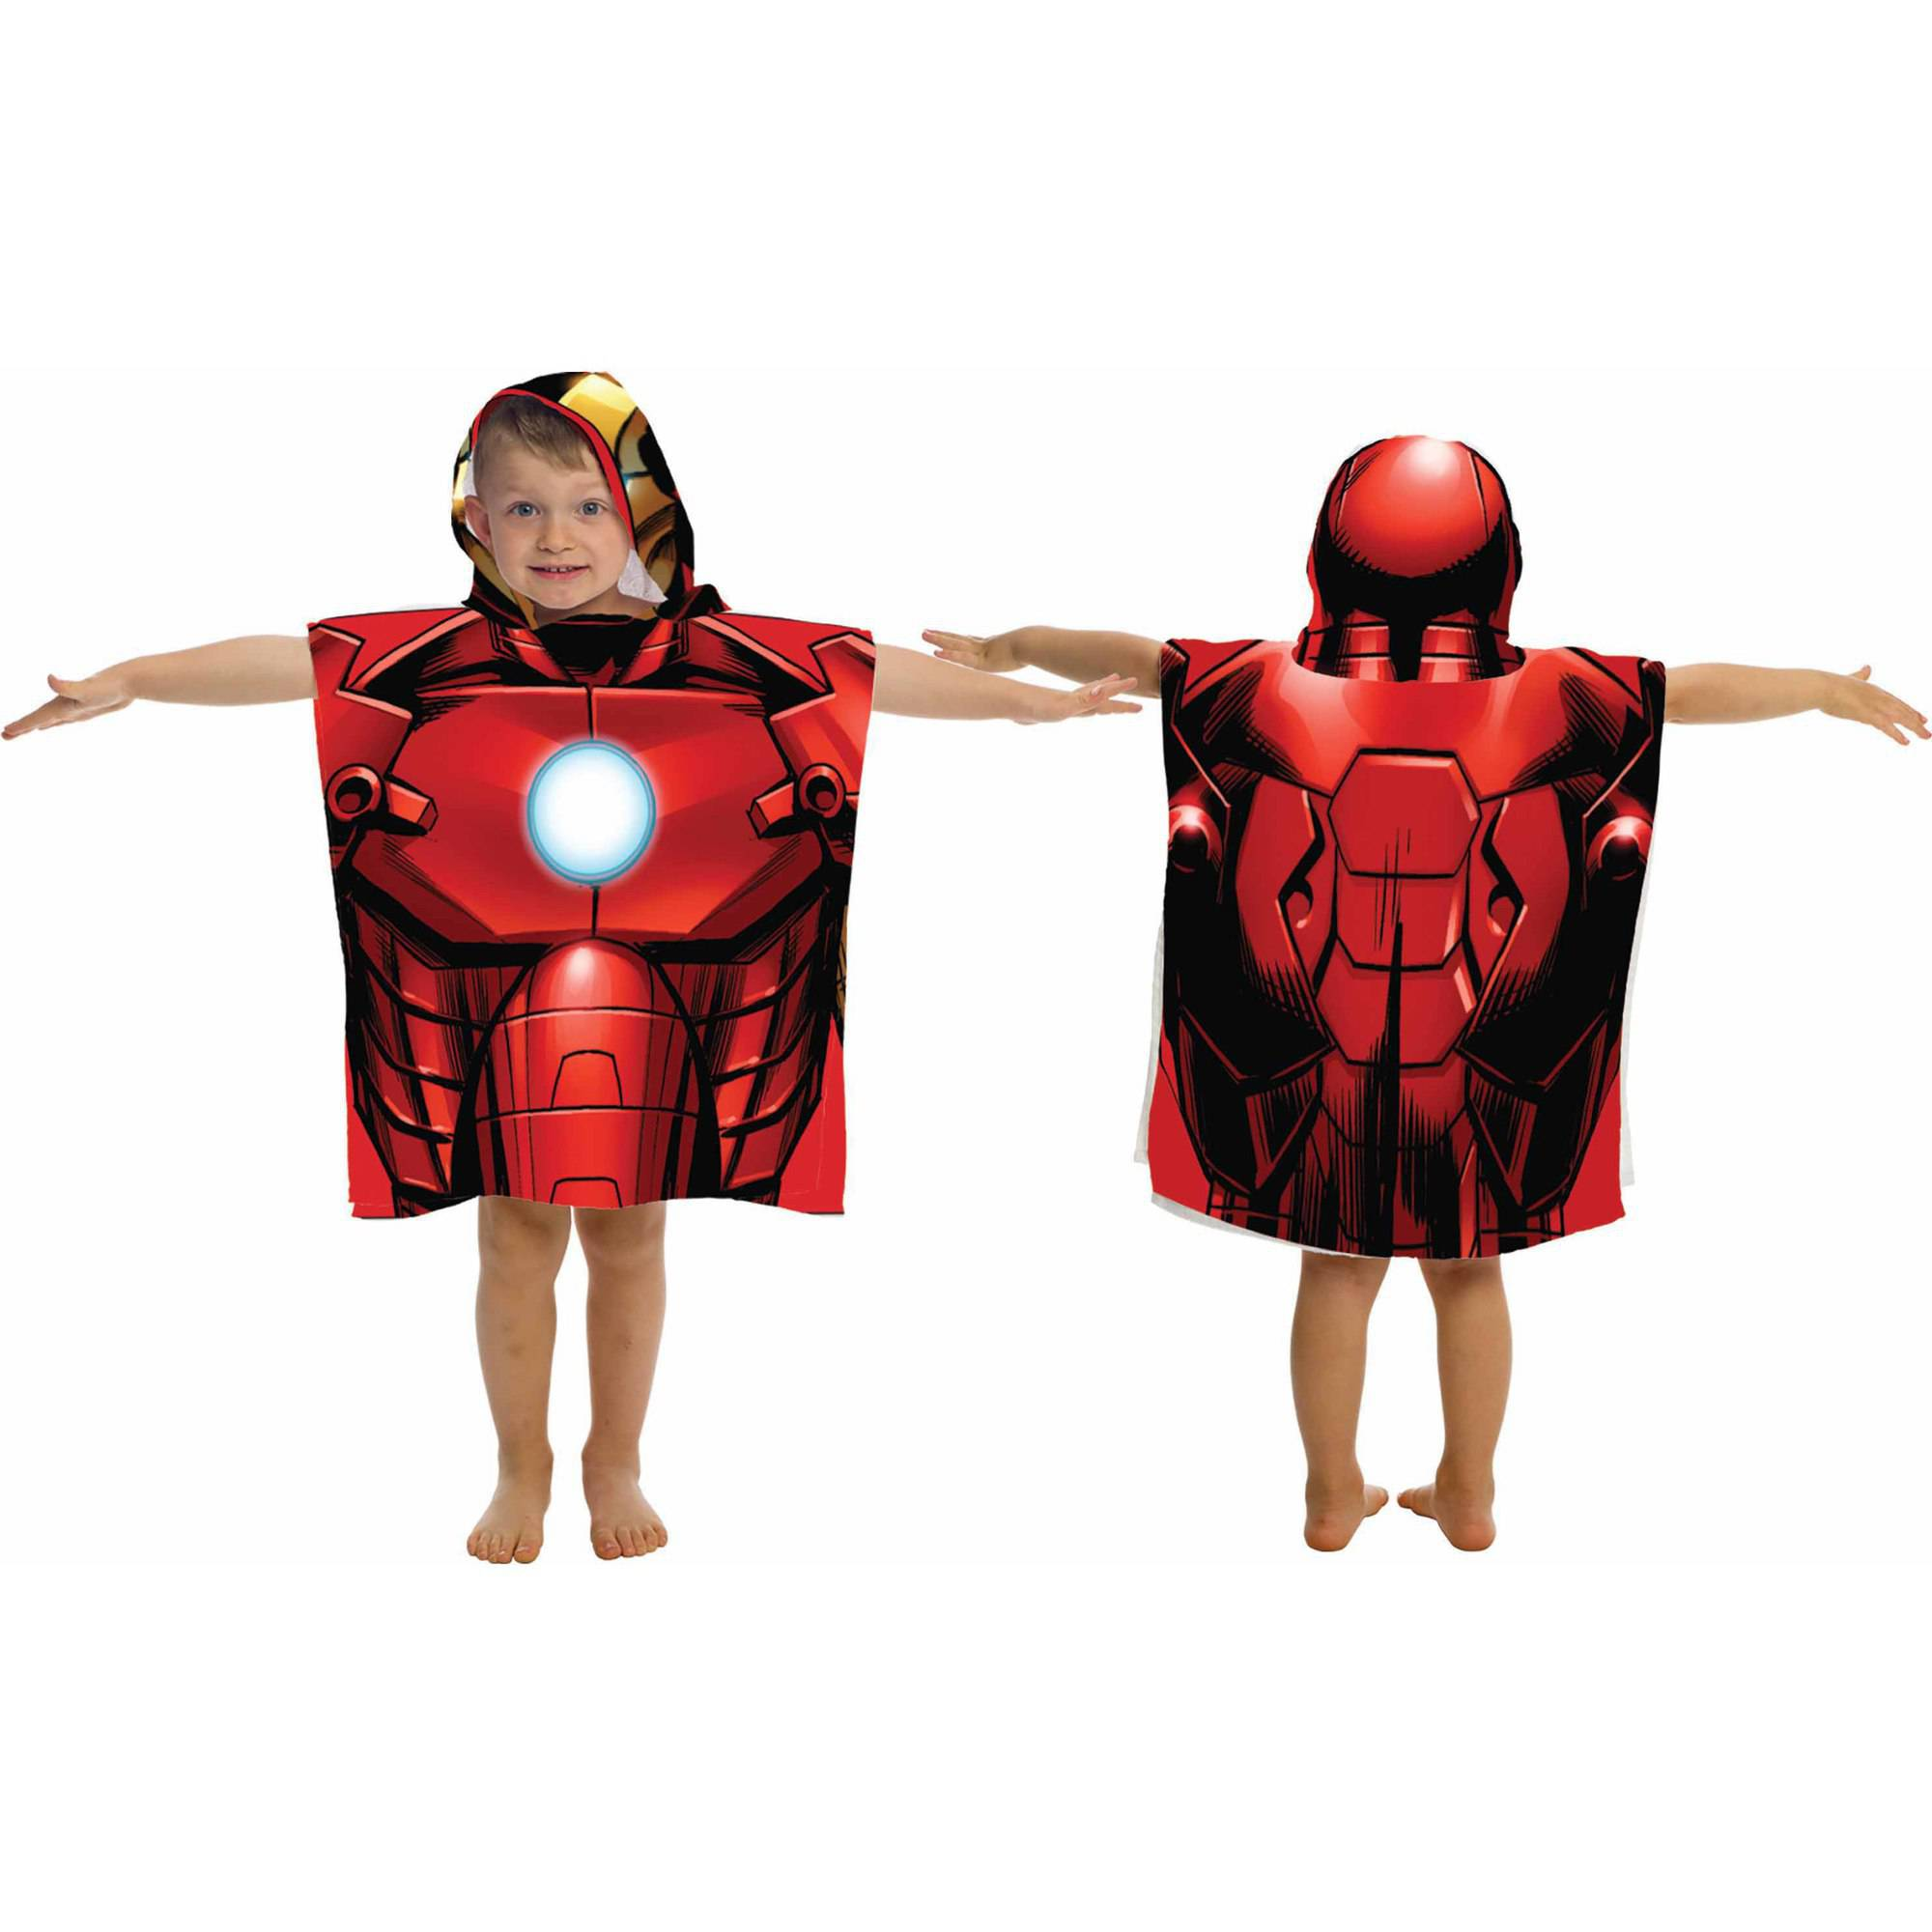 Marvel Iron Man Character Hooded Towel